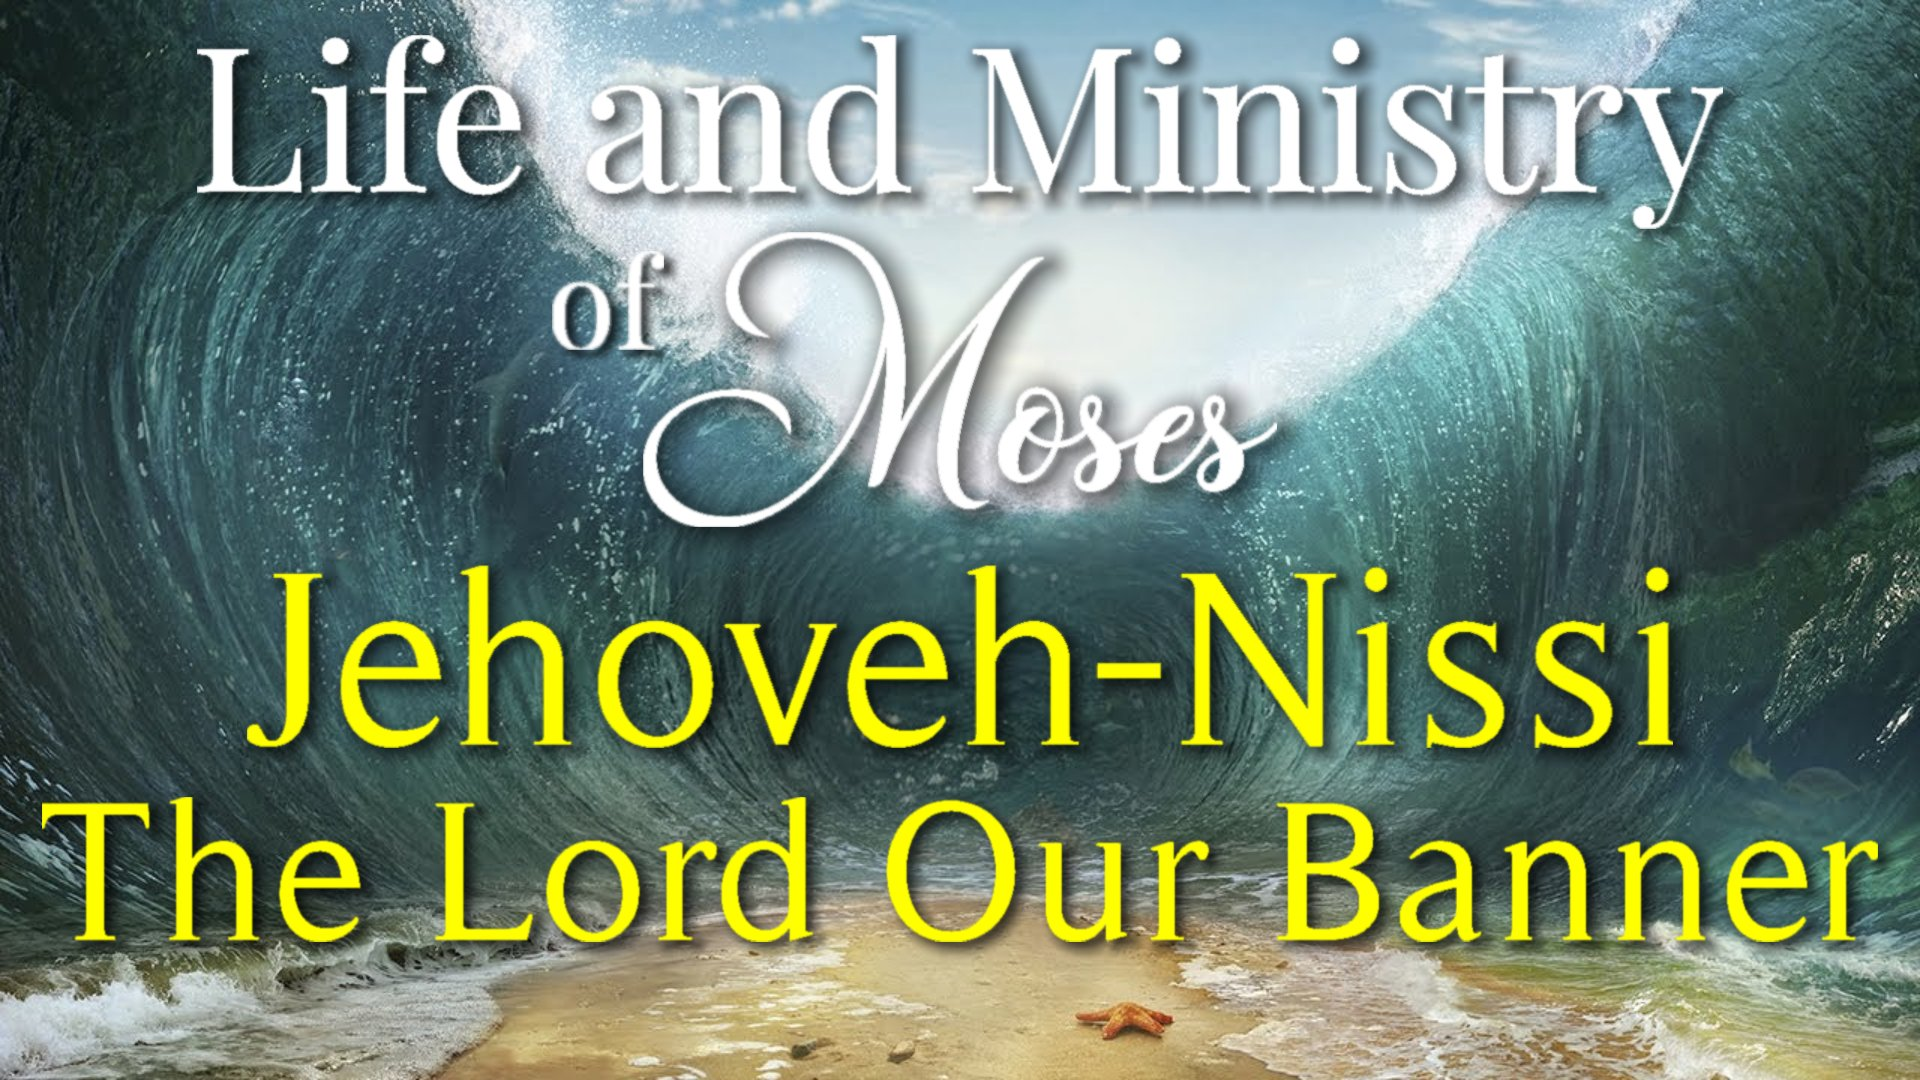 18 Jehovah-Nissi, The Lord Our Banner